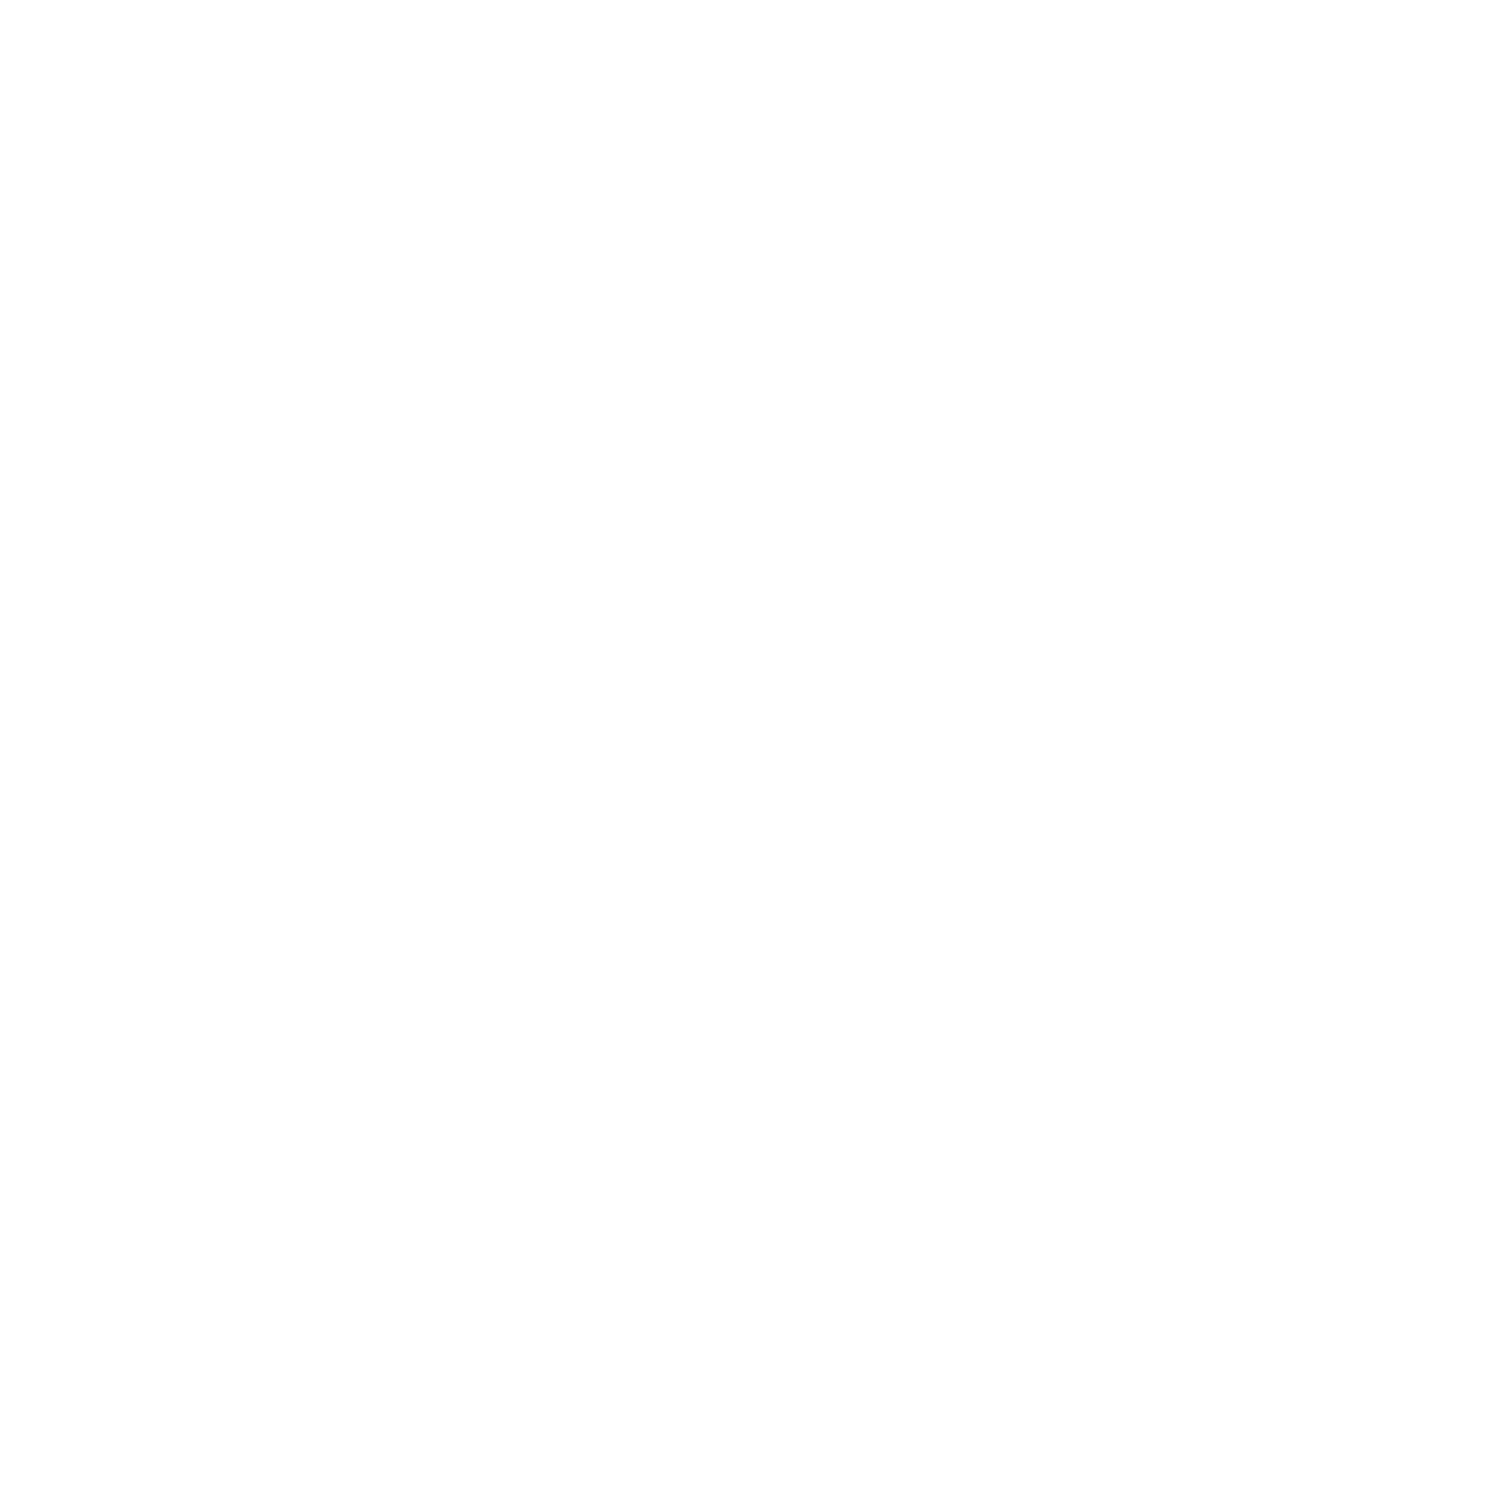 Rethaka Foundation